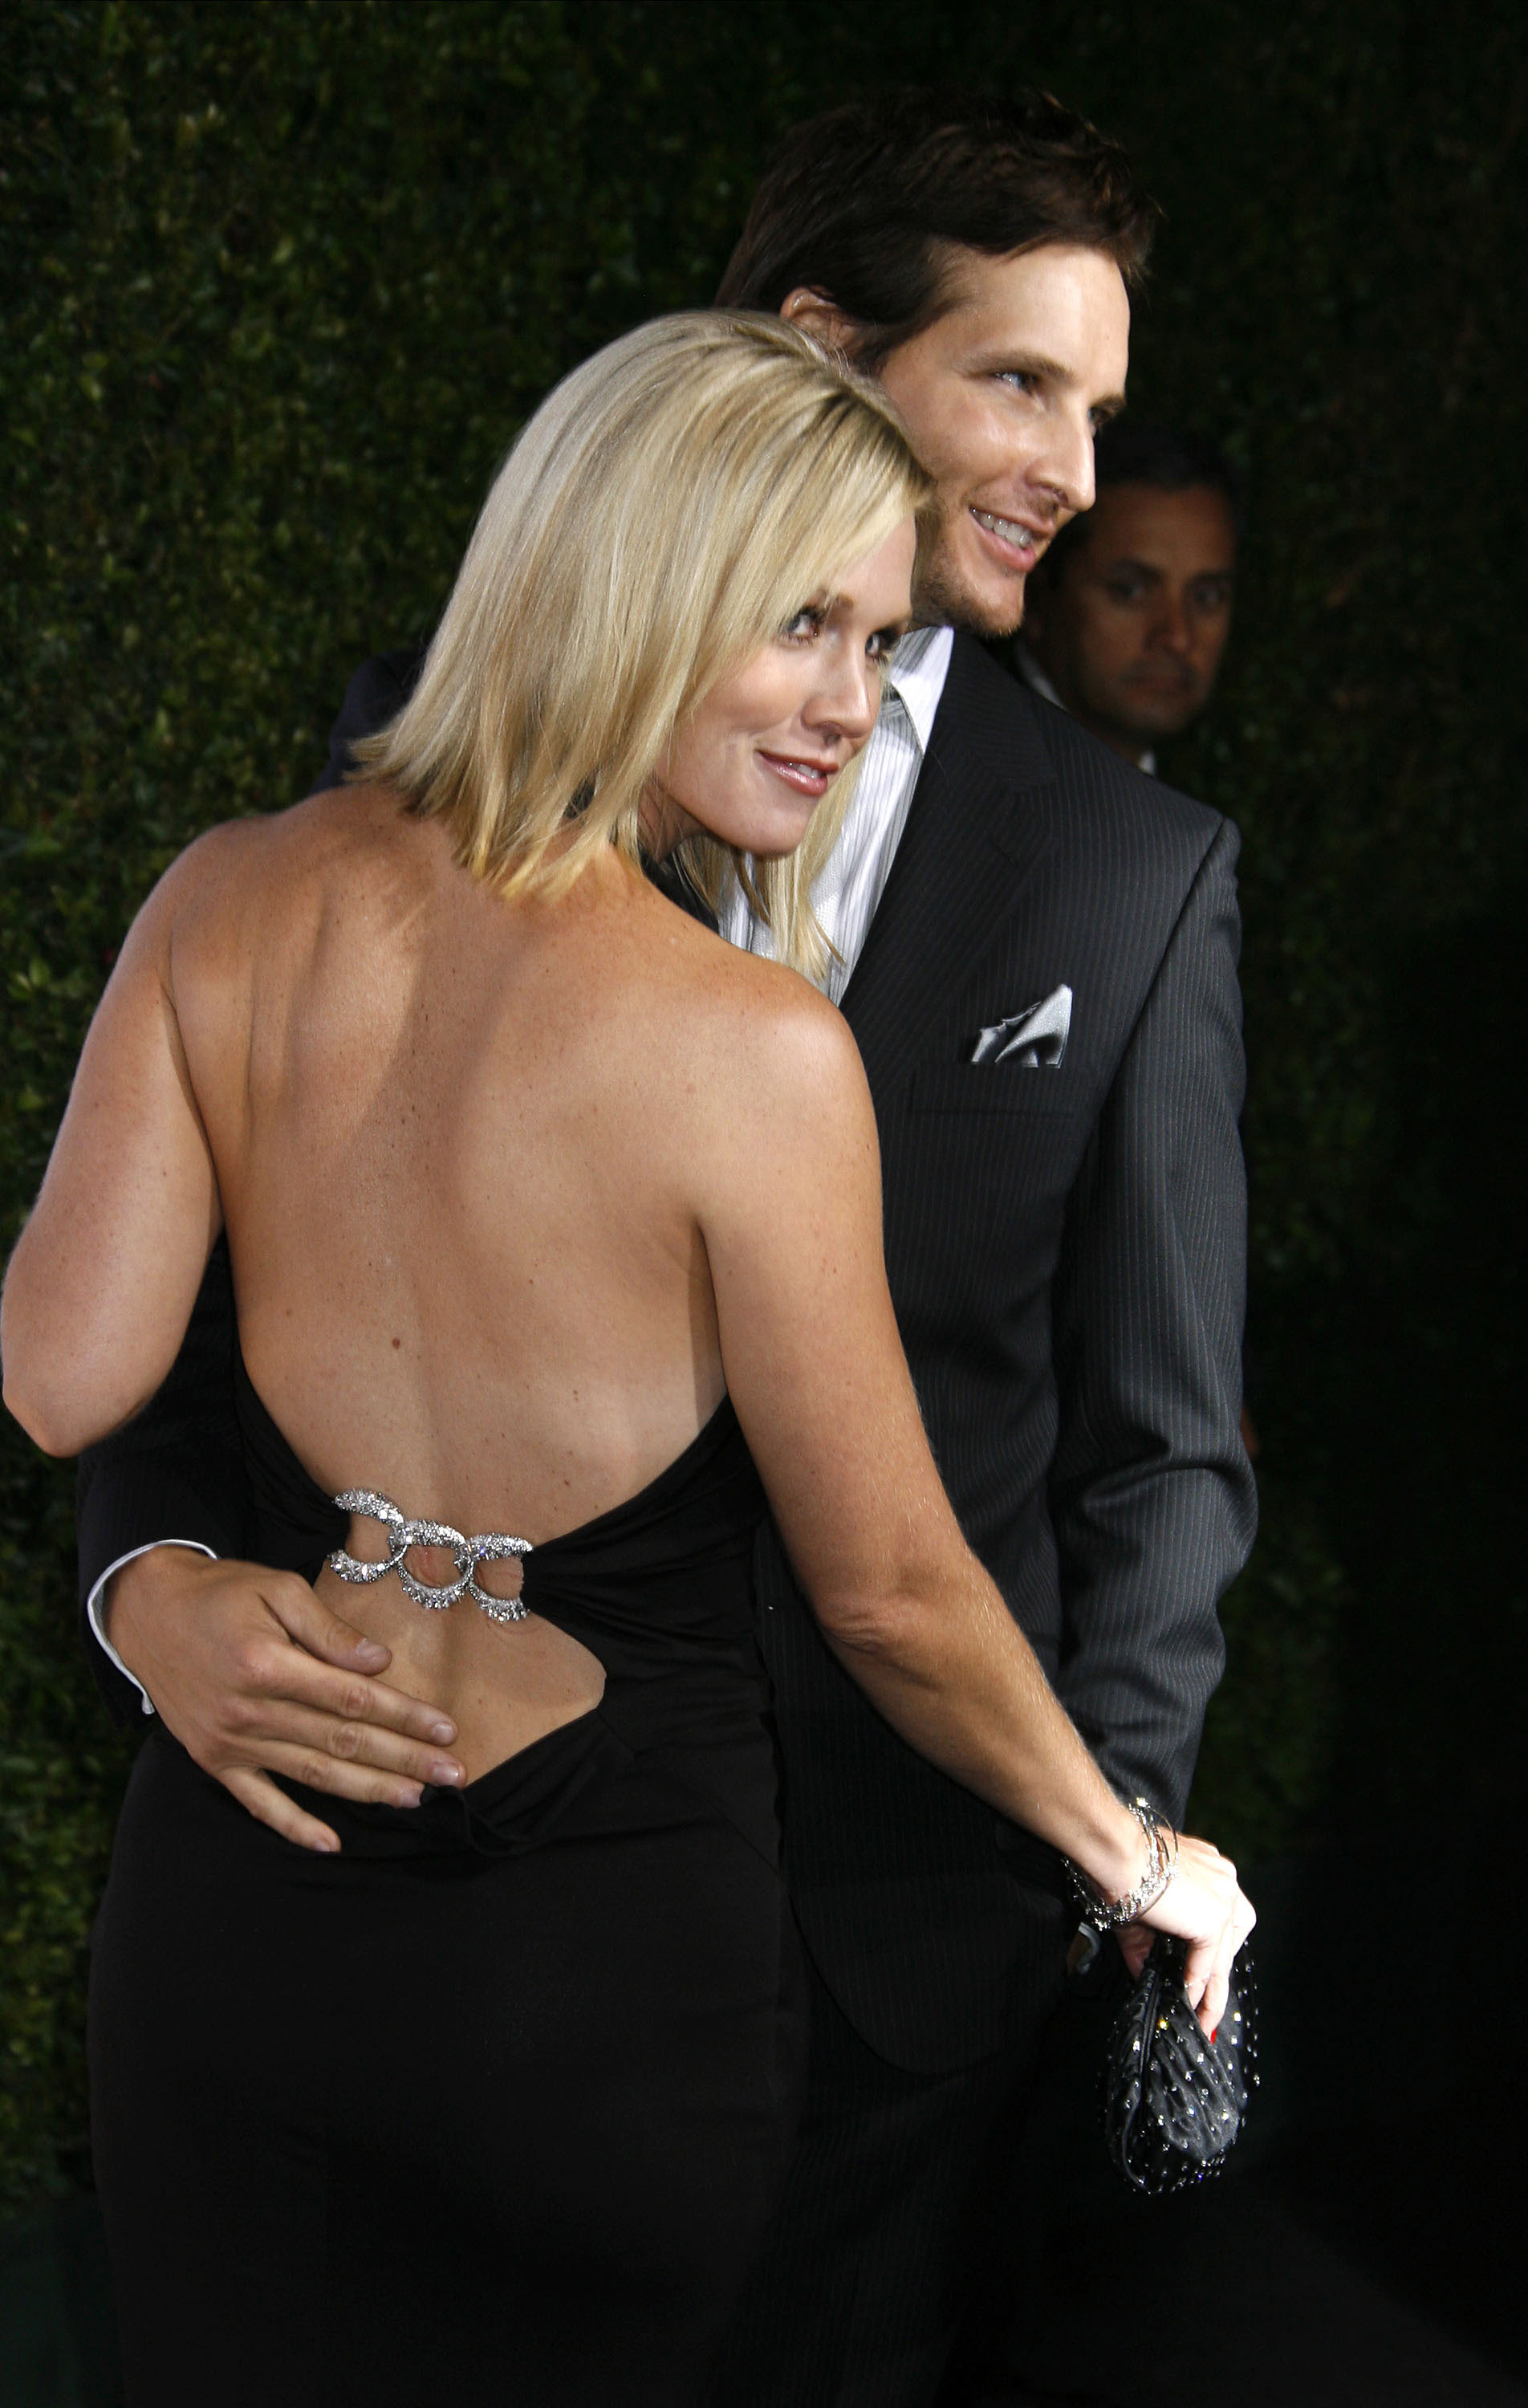 Peter Facinelli and Jennie Garth wrapped their arms around each other at a pre-Emmys bash in Sept. 2008 in LA.